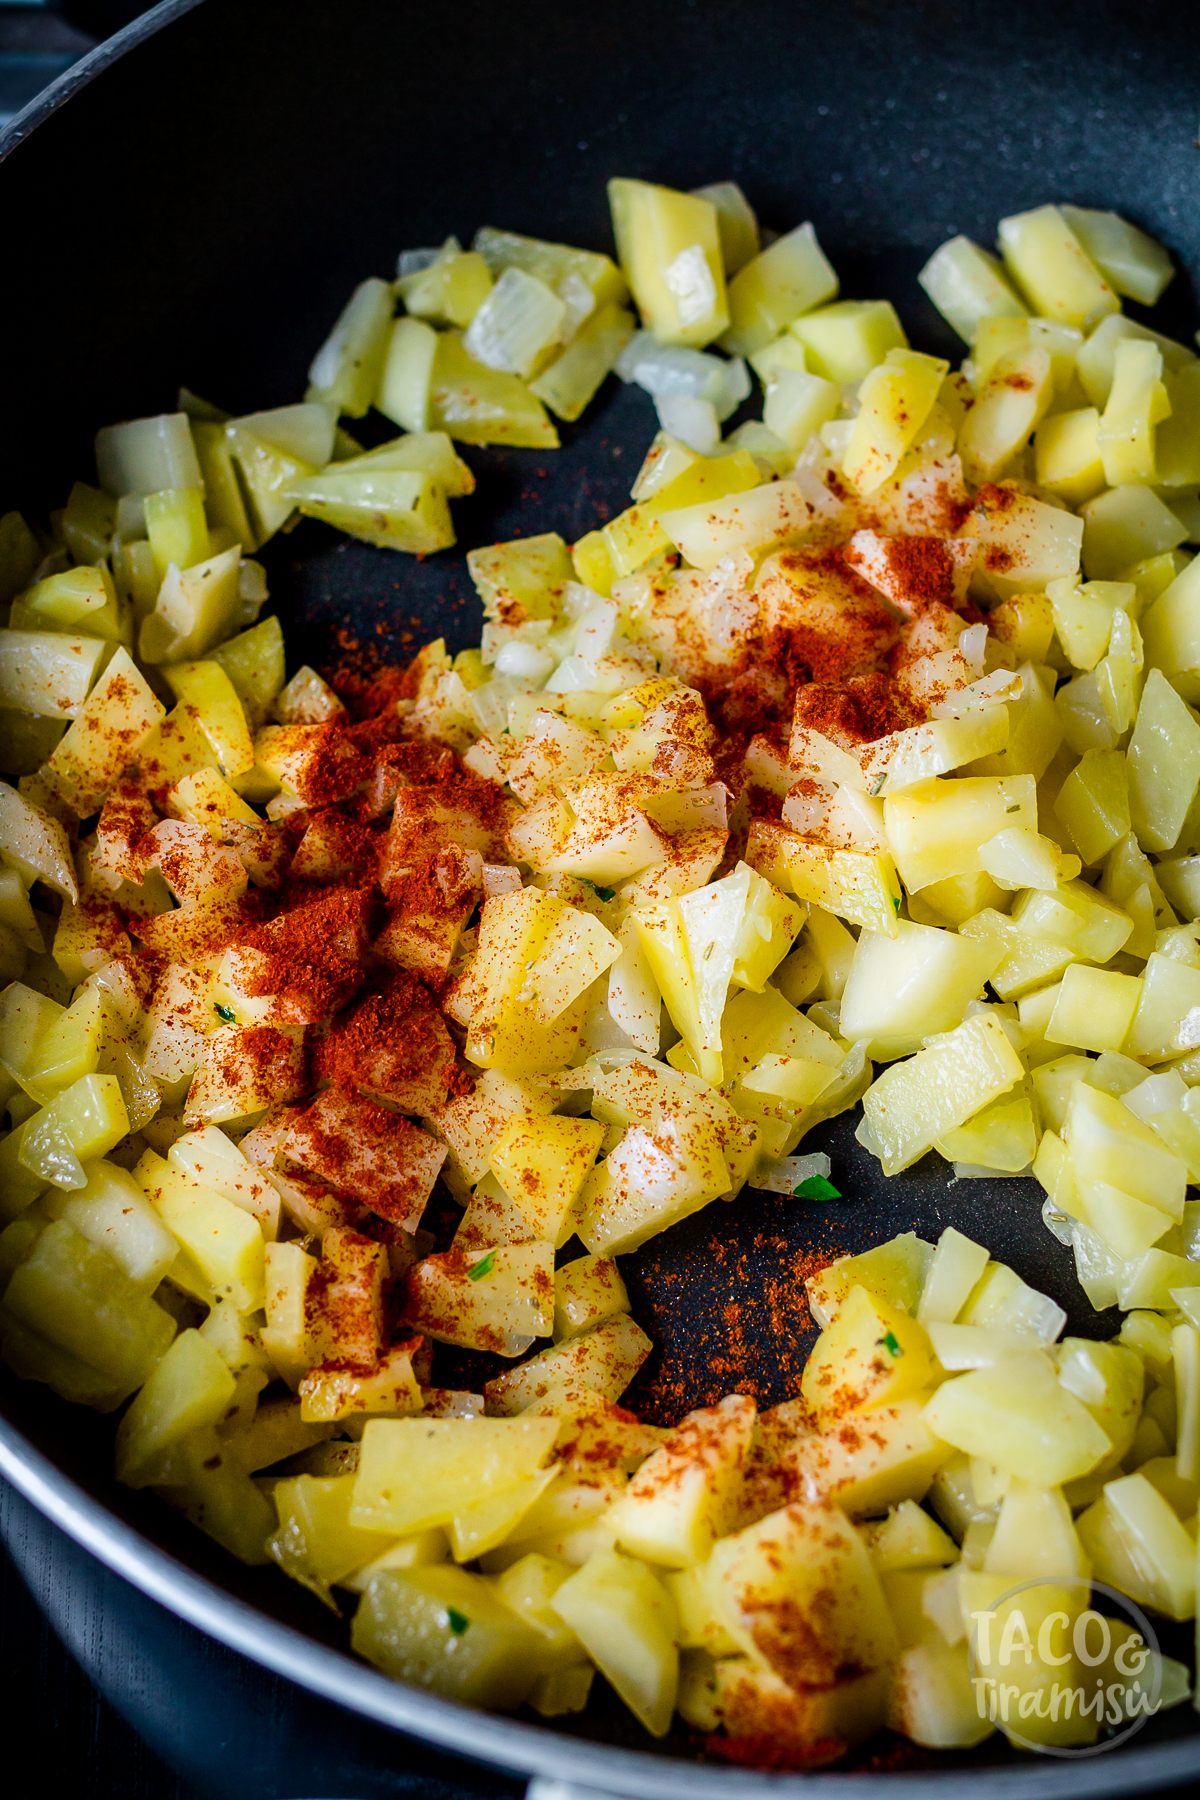 diced potatoes cooked on a pan with red pepper